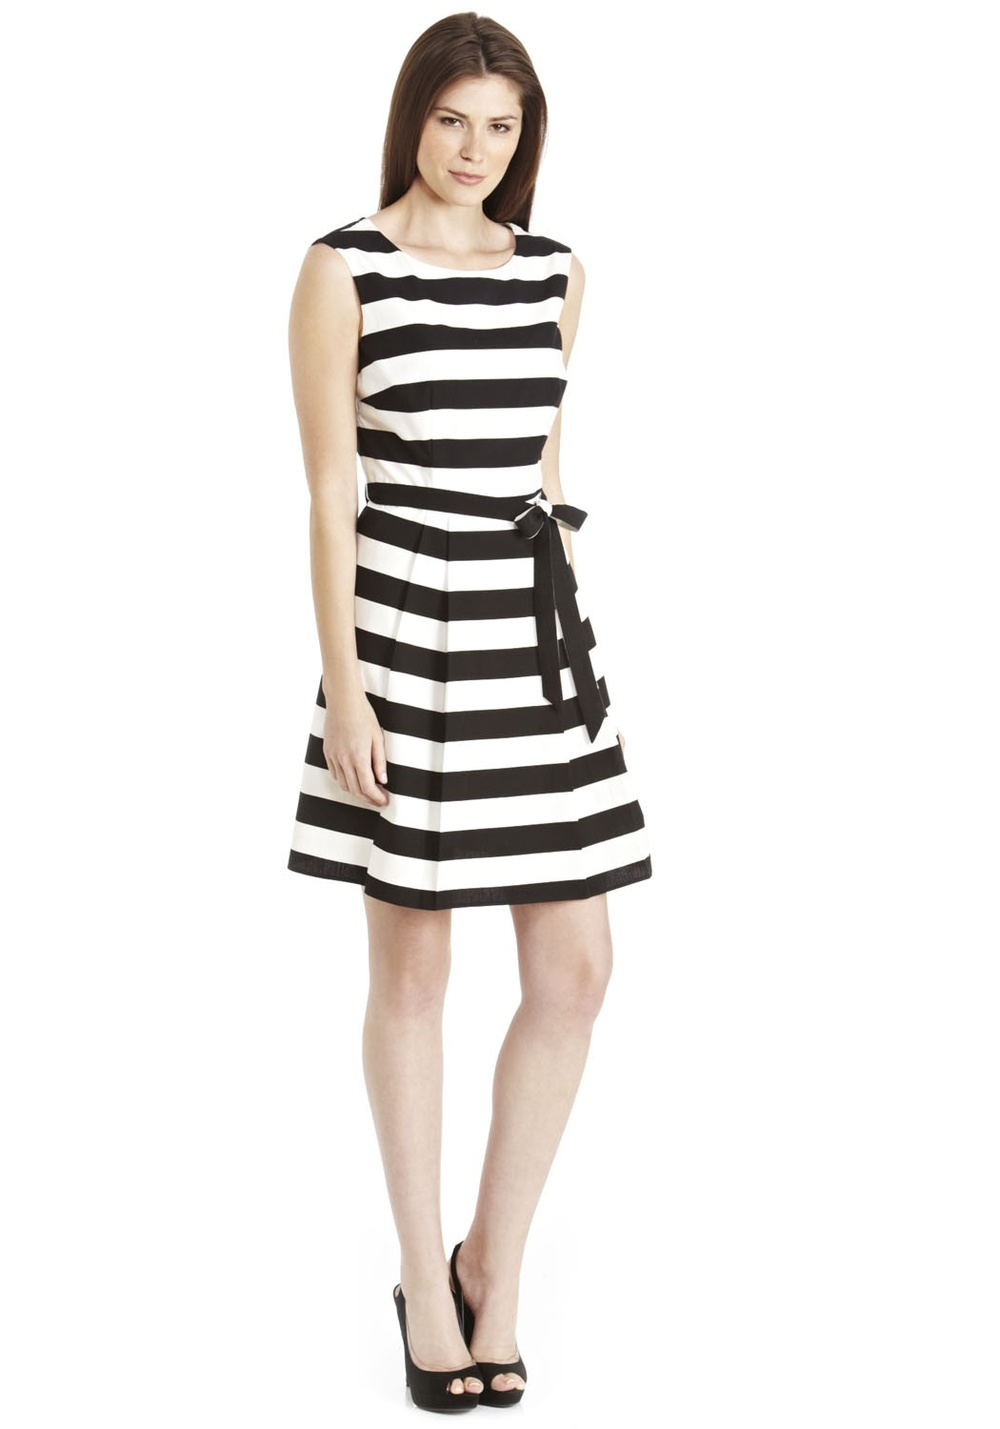 Horizontal stripe prom dress £25, very Beetlejuicey